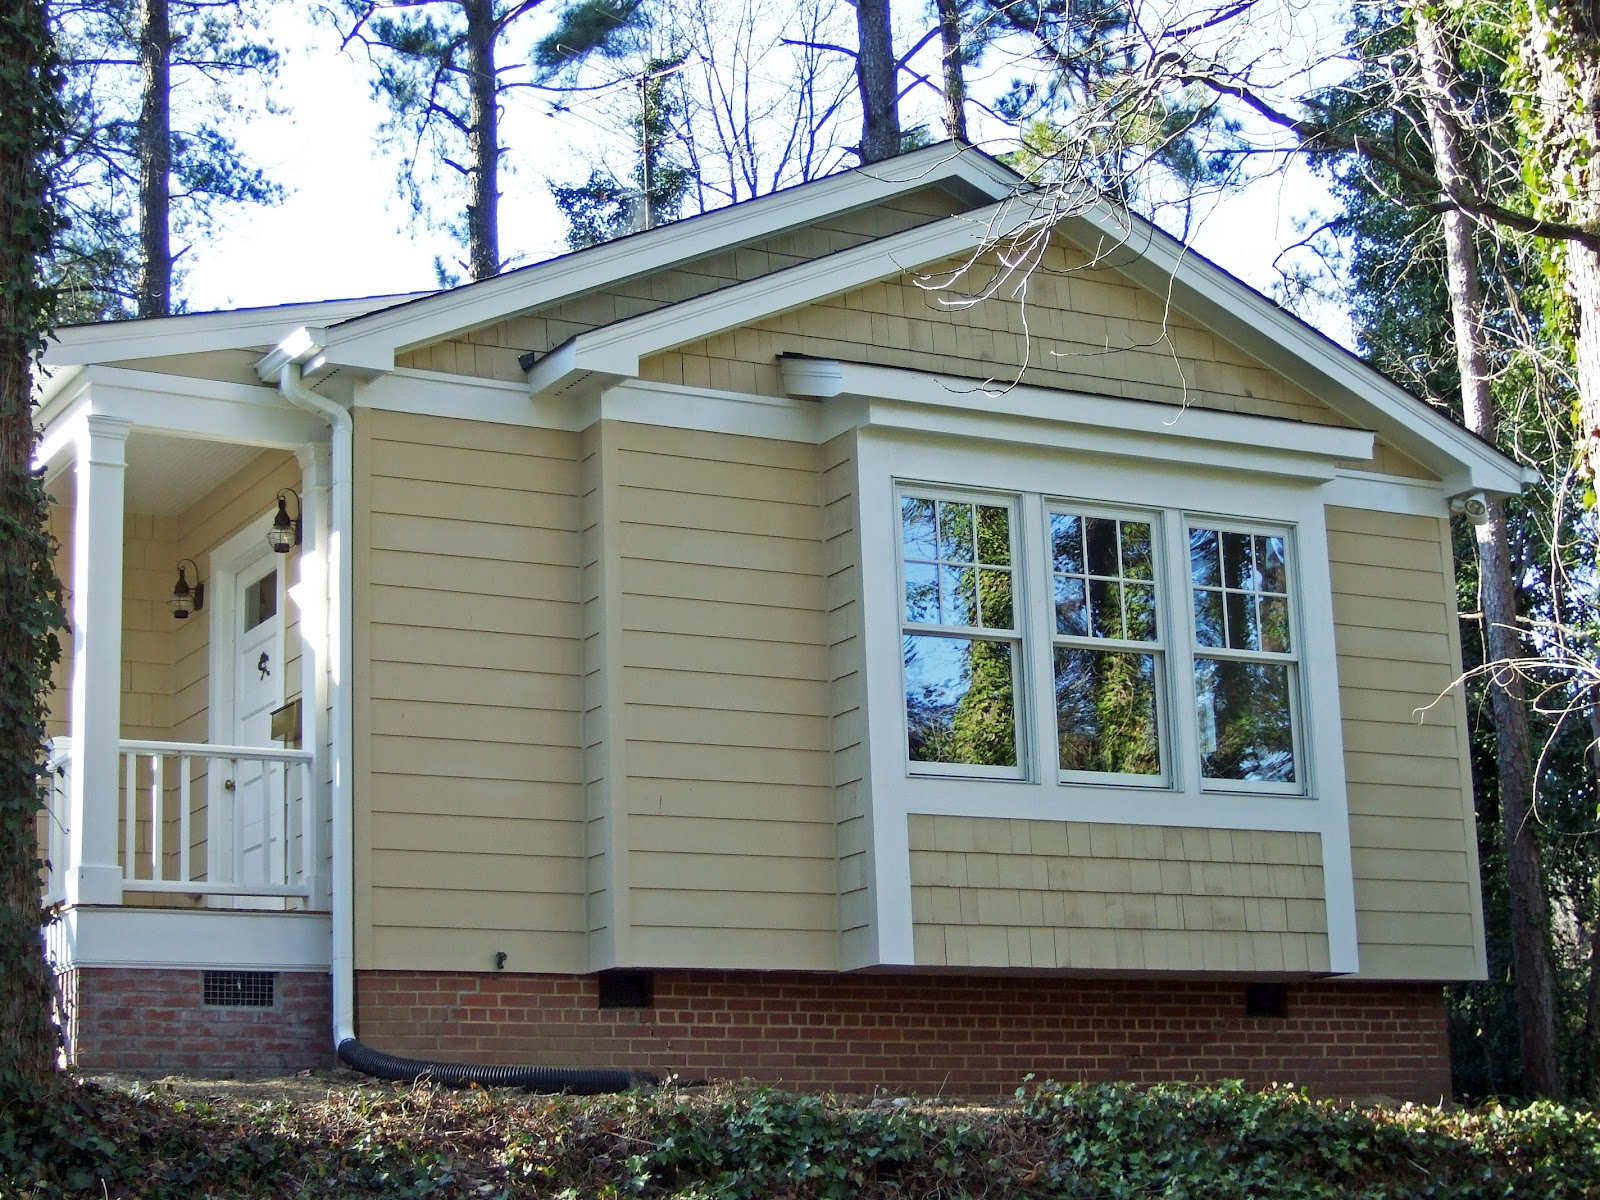 W d osborne design construction 919 493 2936 room for Roof designs for additions